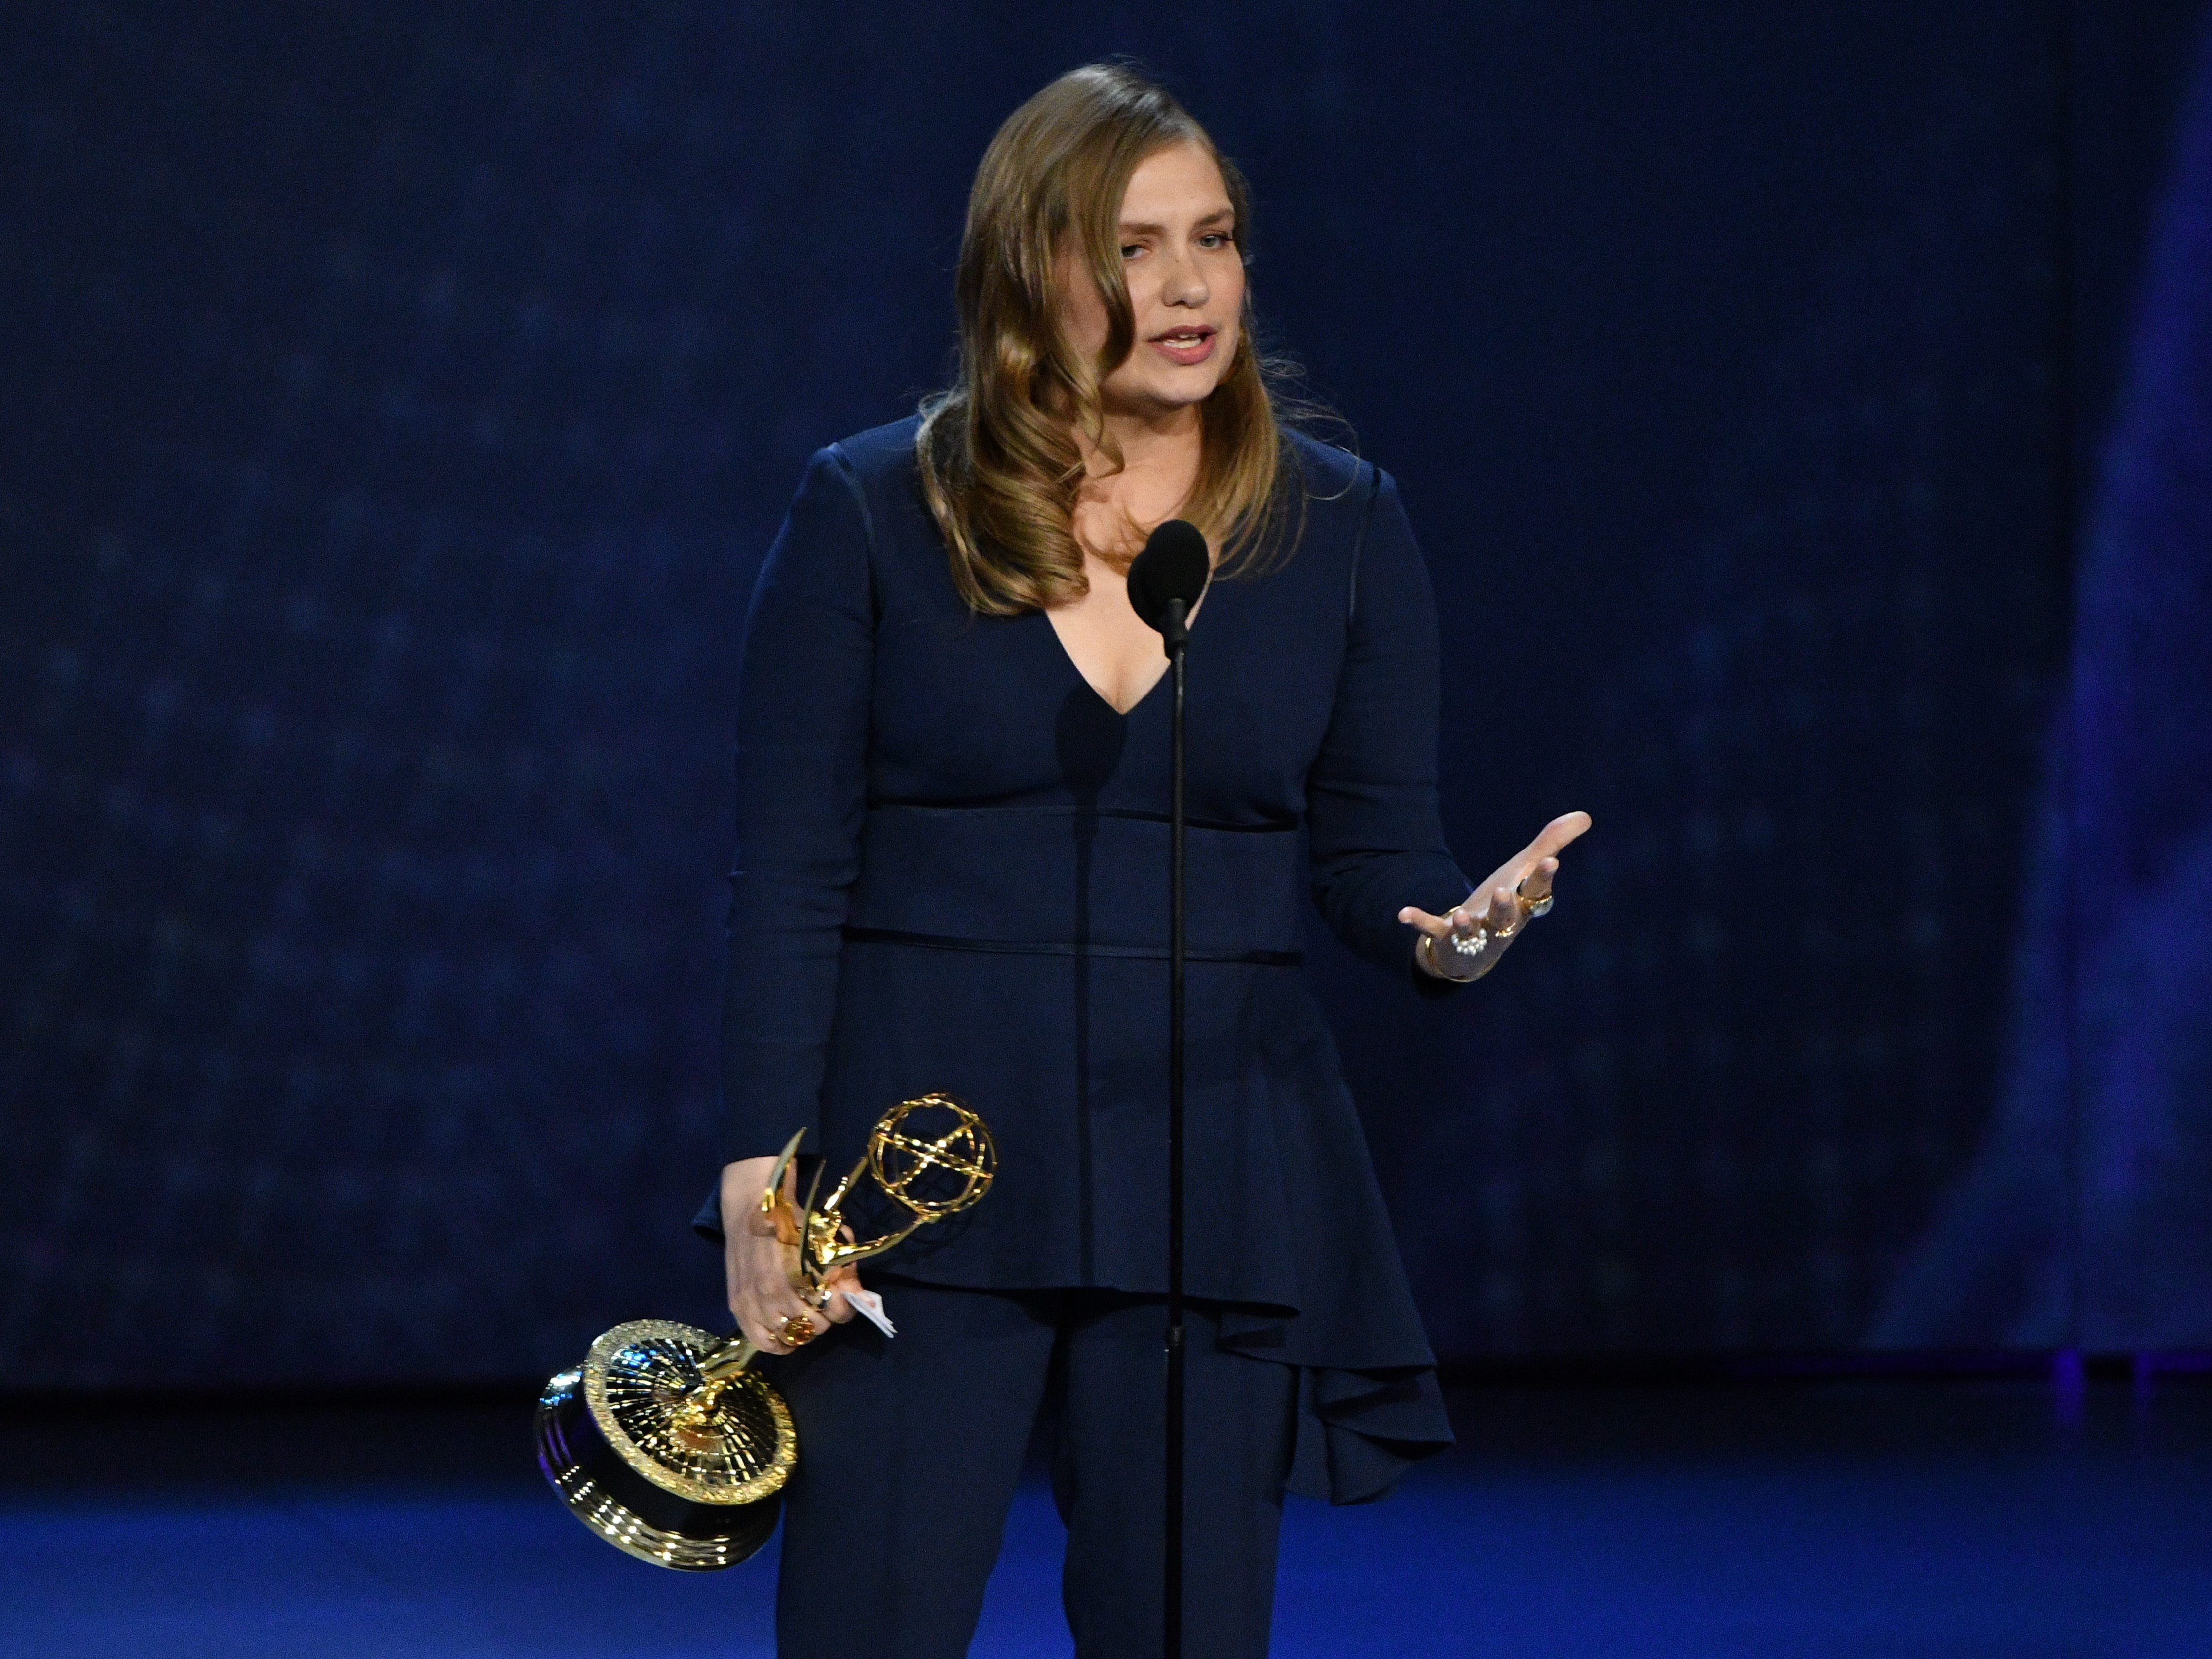 """Merritt Wever accepts the award for supporting actress in a limited series or movie for her role in """"Godless"""" on Netflix."""